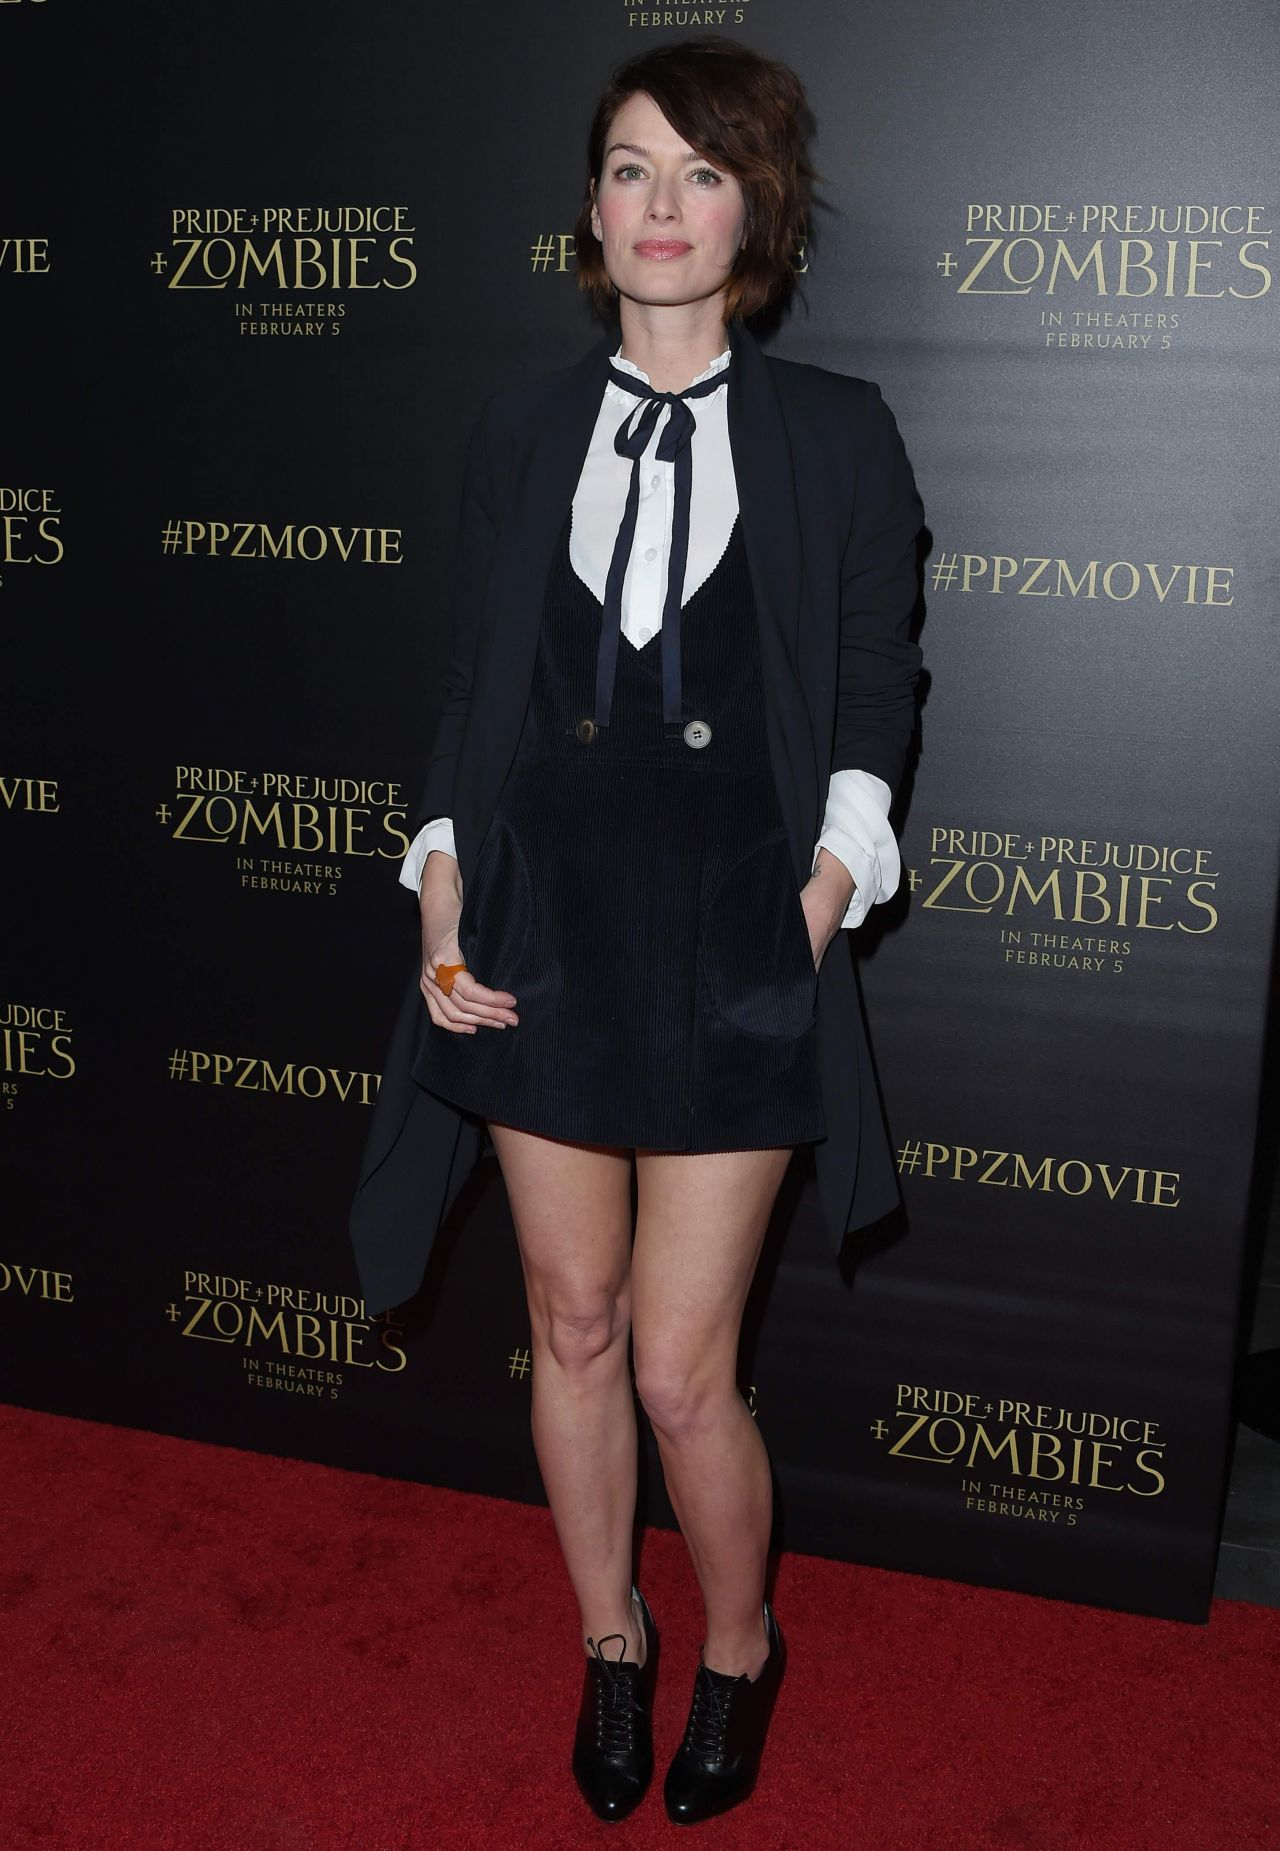 Lena Headey Pride And Prejudice And Zombies Premiere